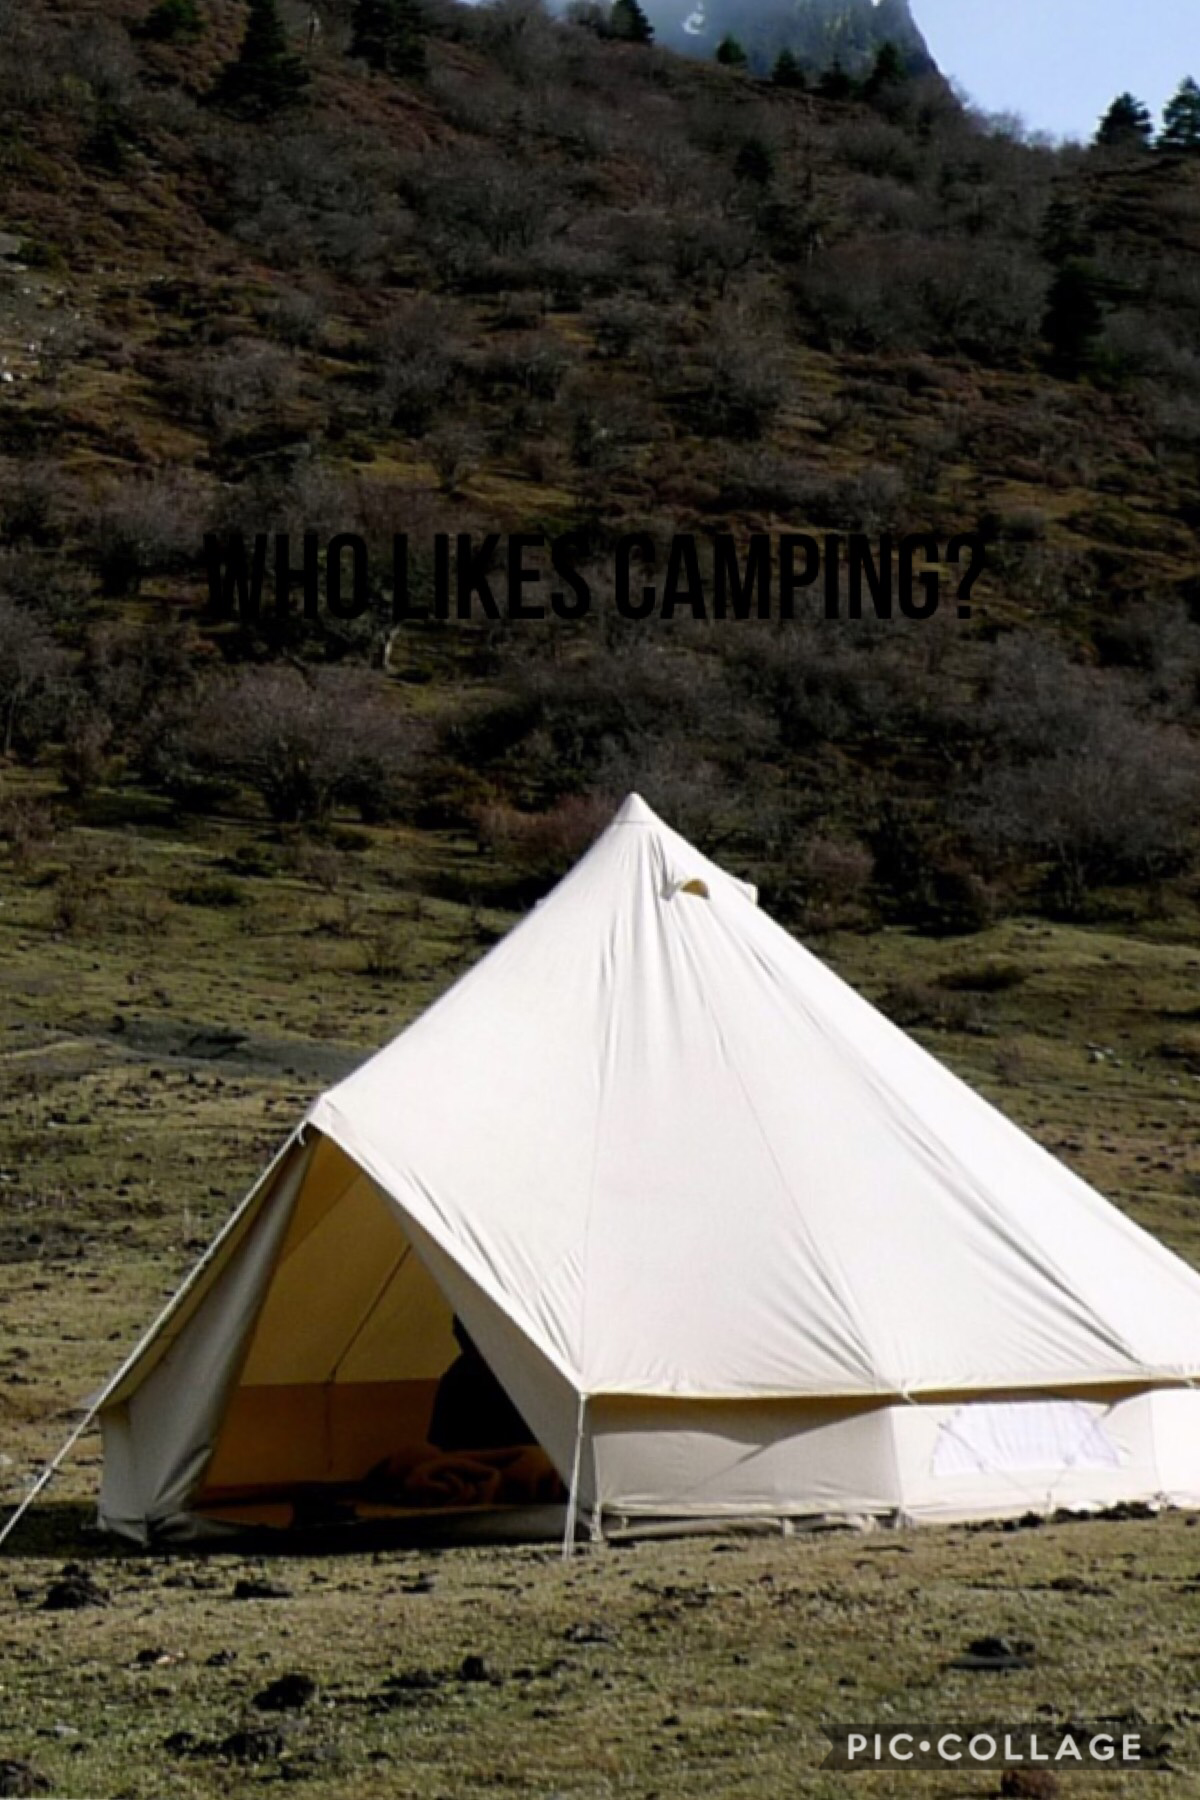 I have never gone camping but I'm going to go soon